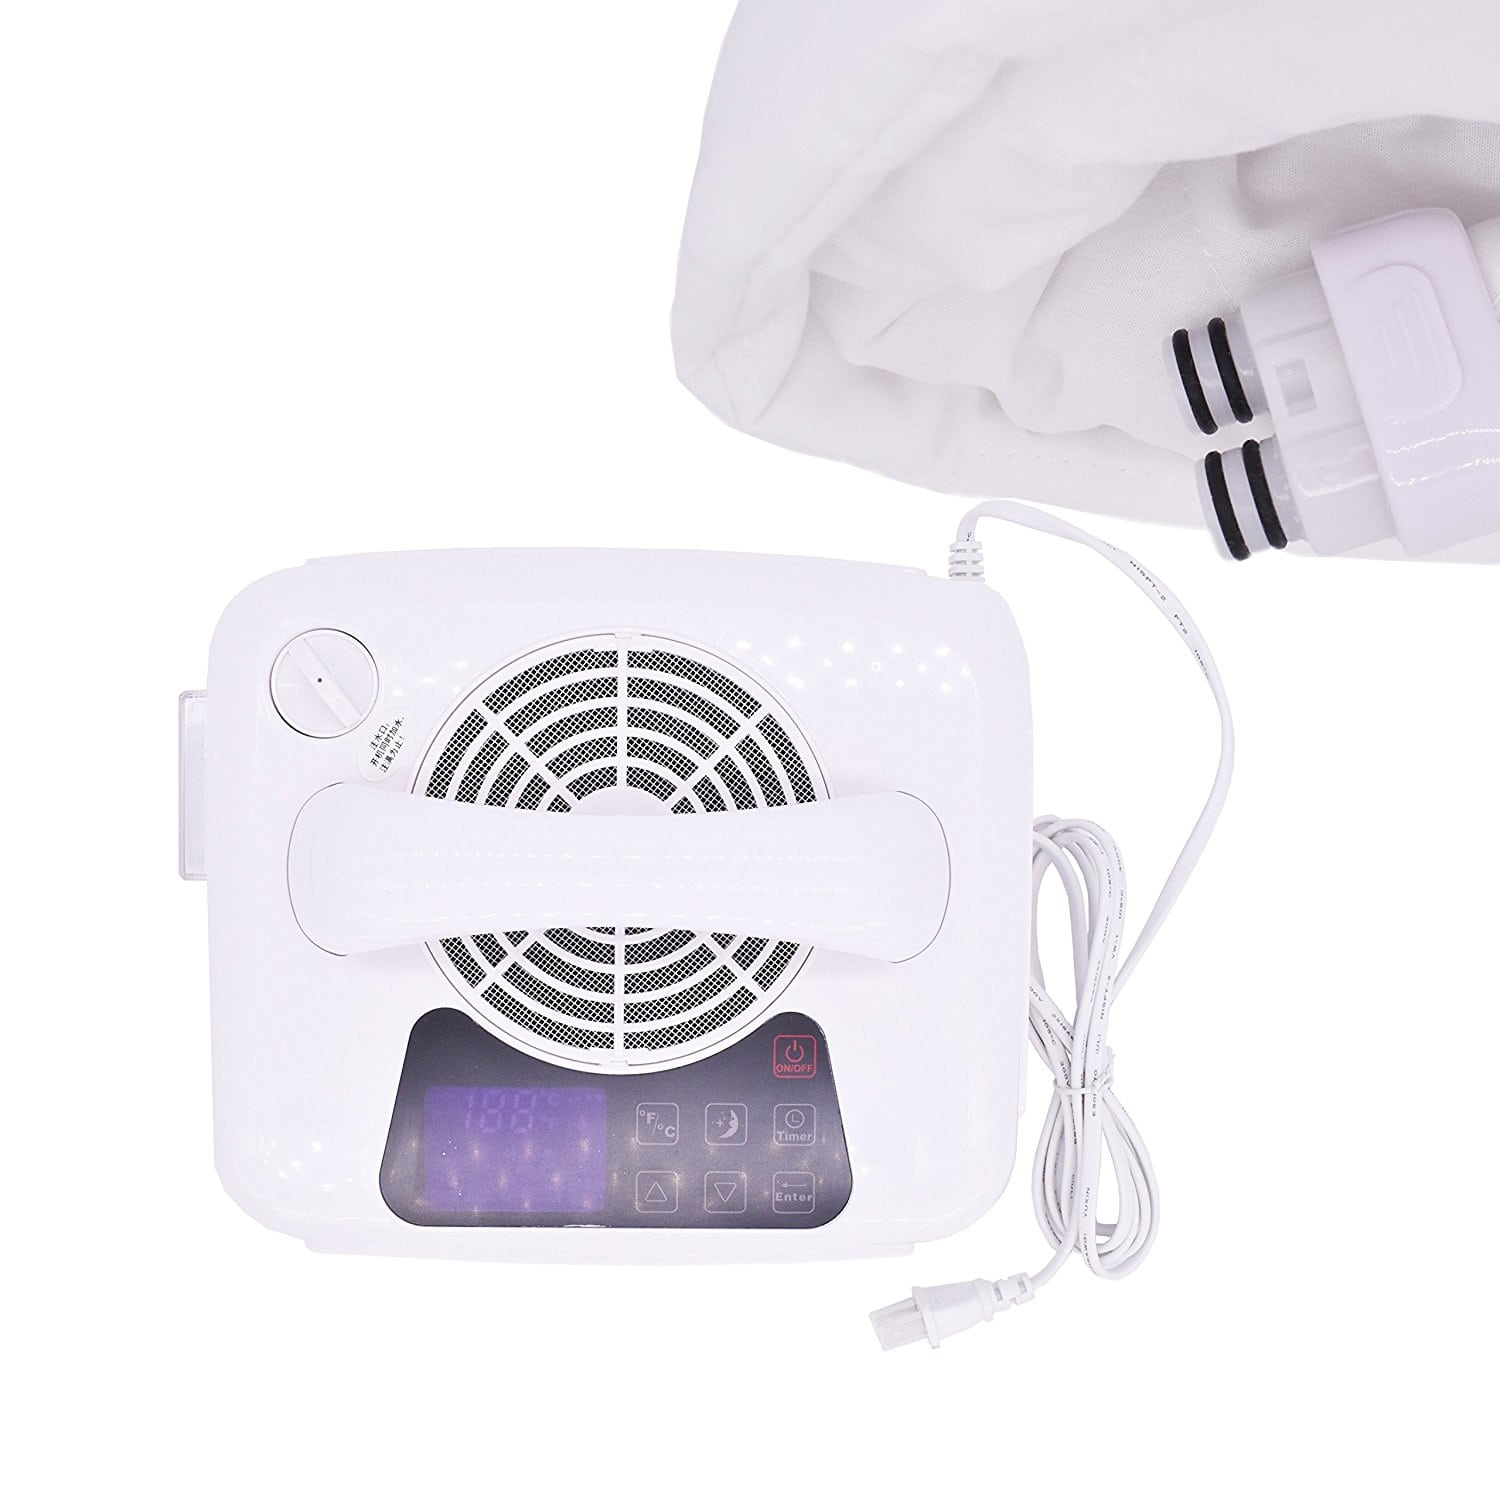 Baiyea Bed Fan Cooling System Air Conditioner